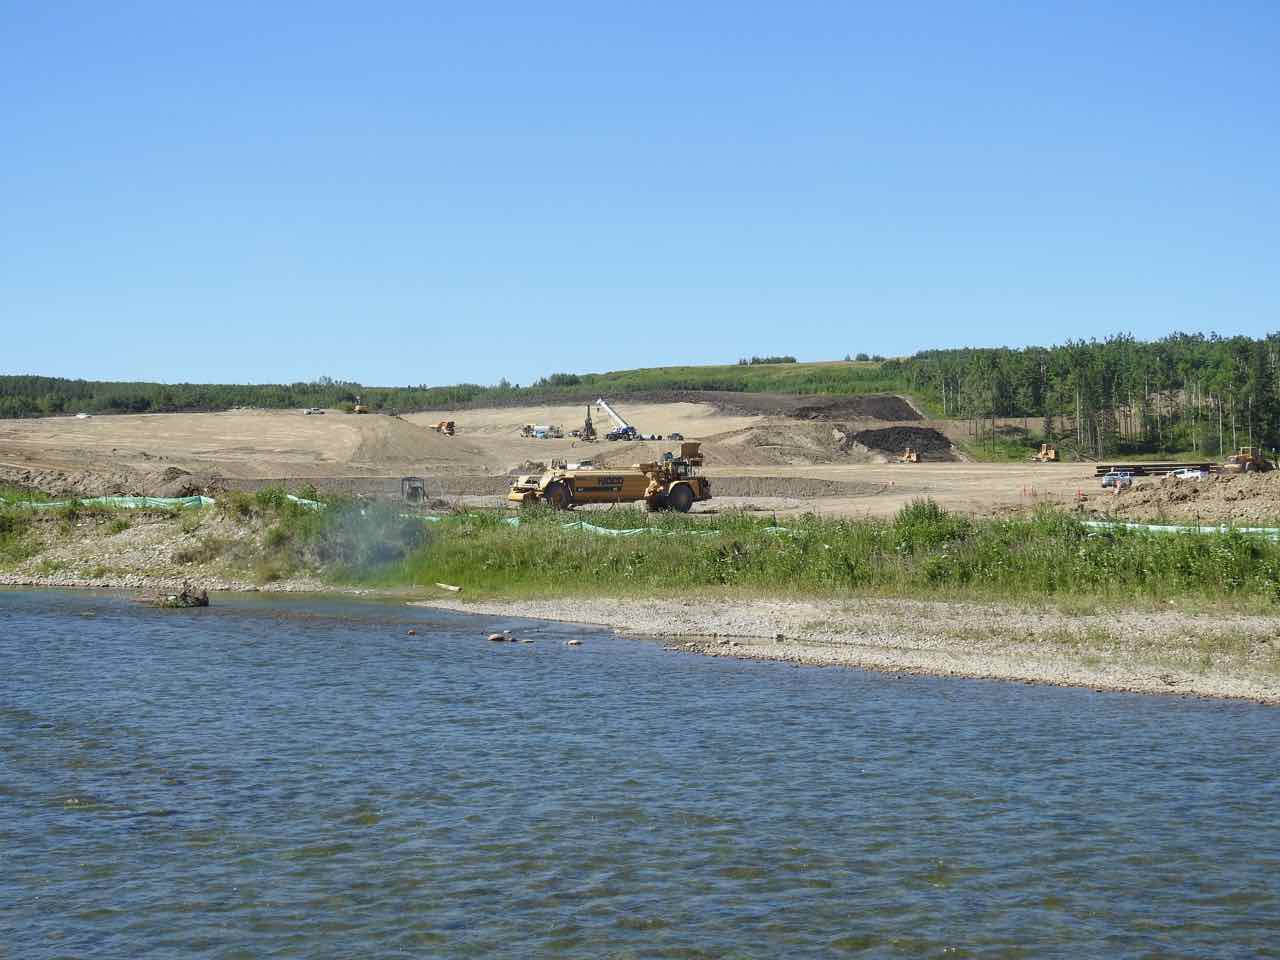 12_SWCRR-TUC-Weaselhead__Large_Scale_Earth_Contouring_South_of_the_Elbow_River_Valley-July_24_2017.jpg